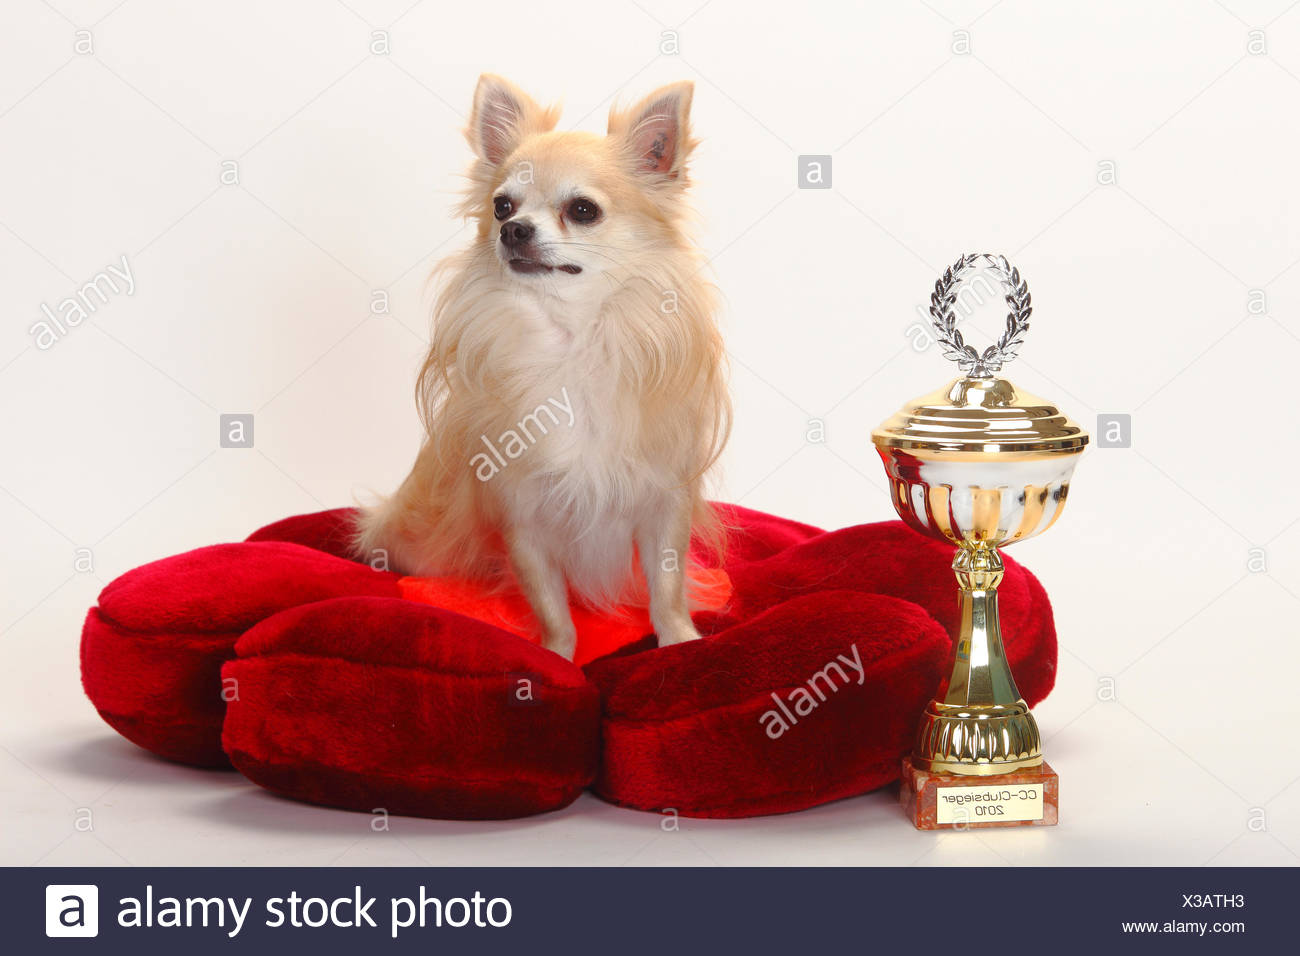 Chihuahua, longhaired, with trophy sitting on red cushion. Stock Photo